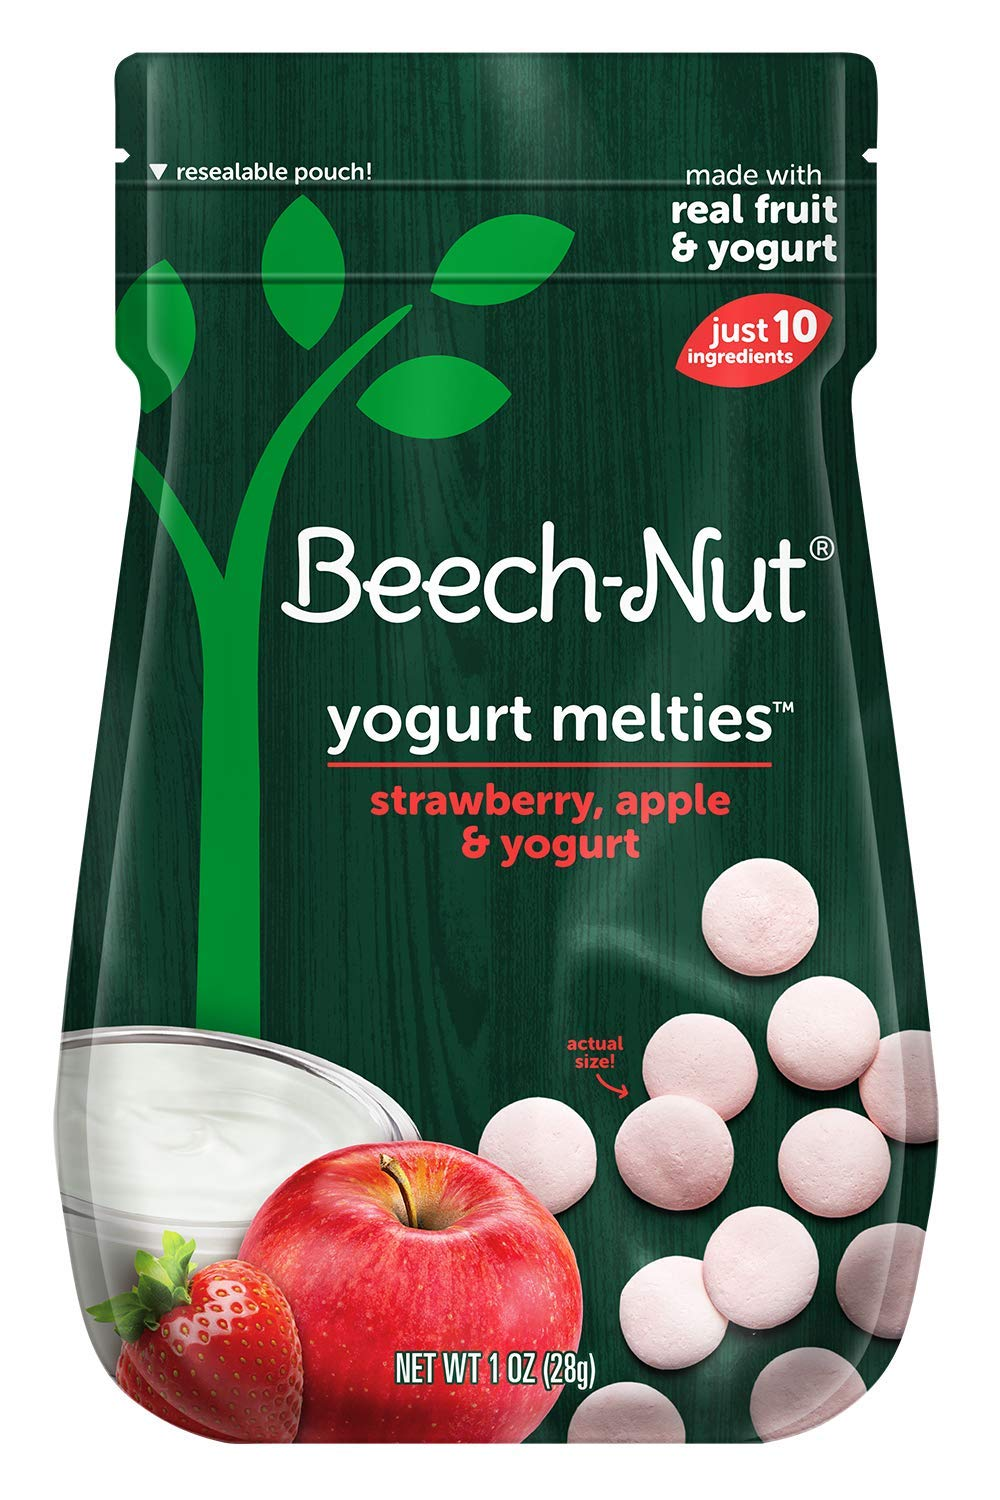 Beech-Nut Yogurt Melties Stage 3, Strawberry, Apple & Yogurt, 10 Simple Ingredients, Baby and Toddler Snacks, 7 Count, 1 oz Pouches…